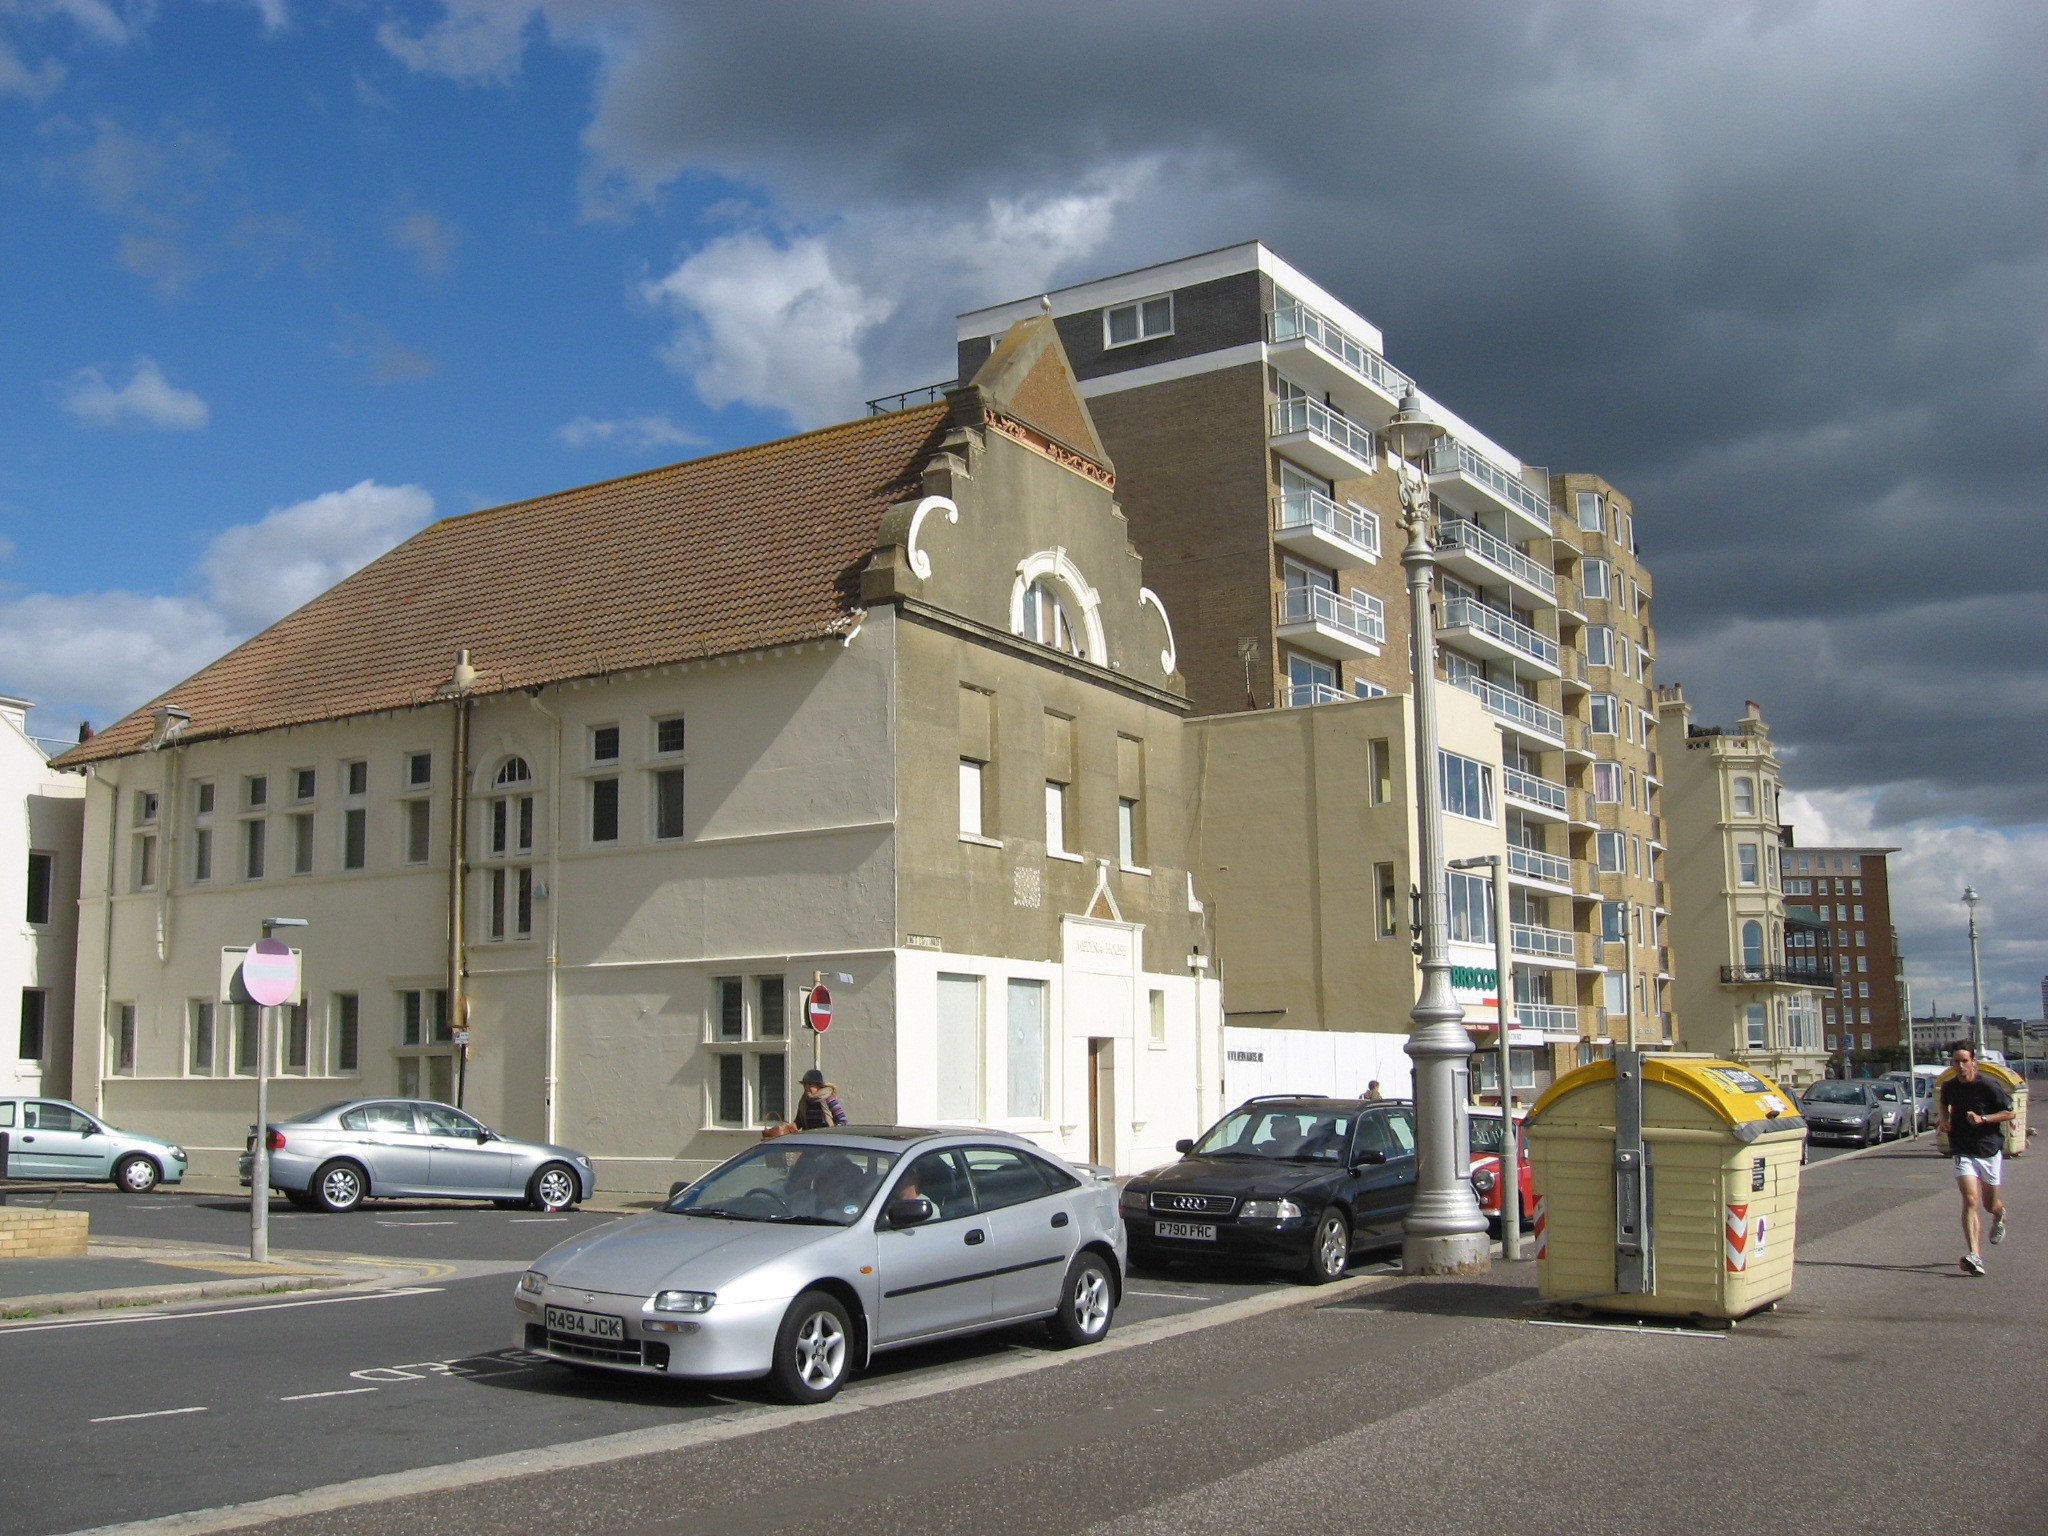 Medina House in Hove which was previously used as public baths